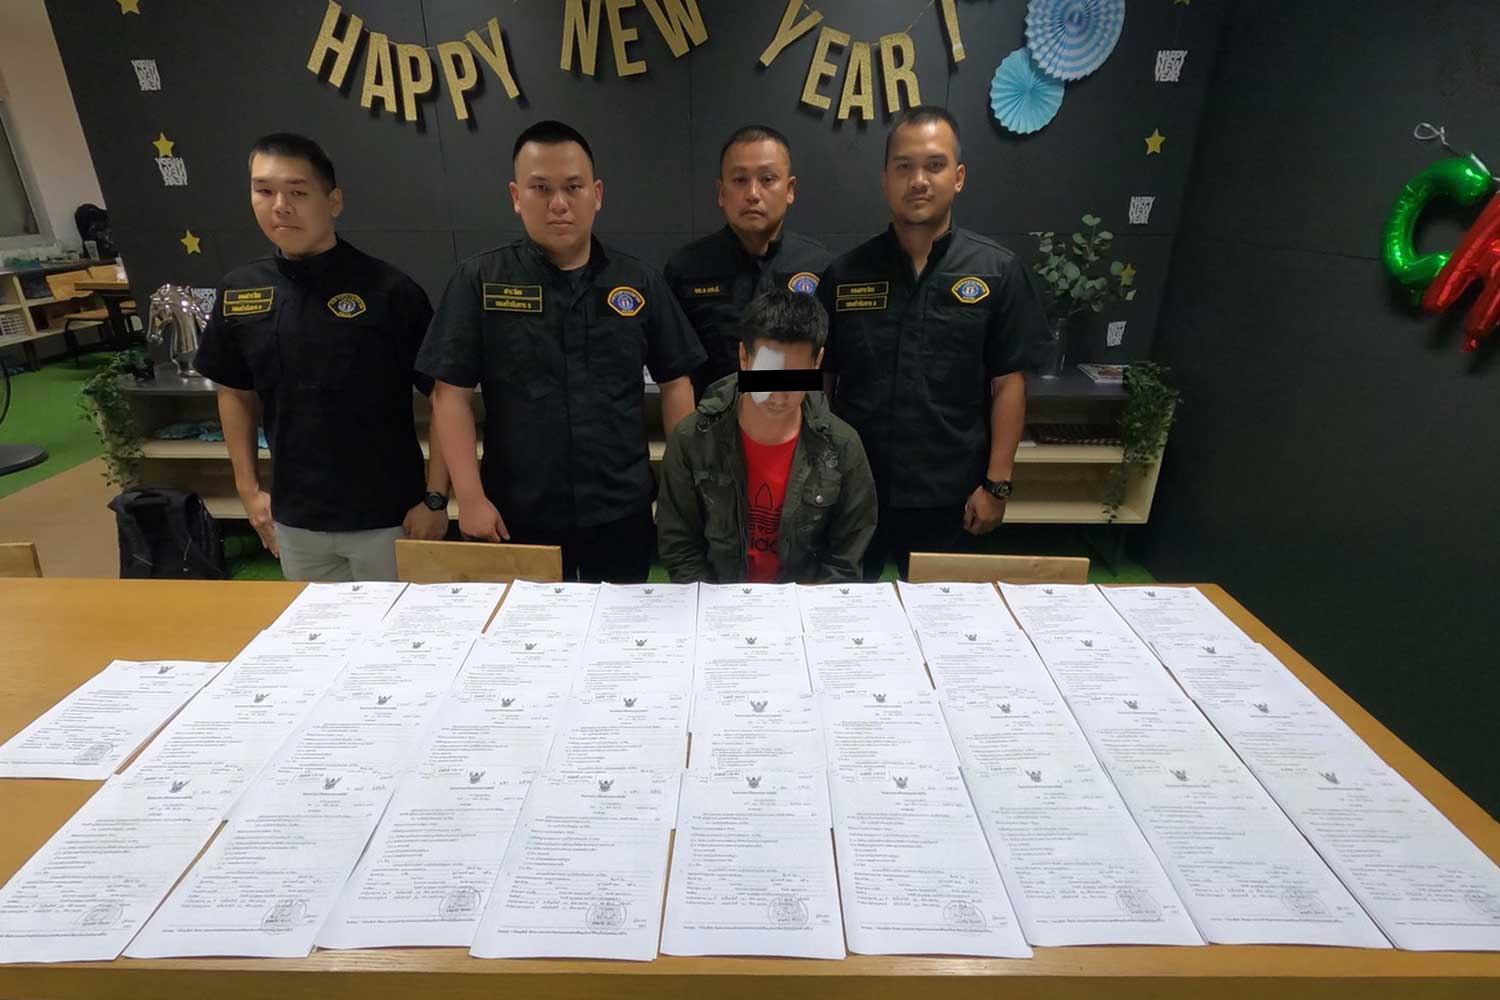 Crime Suppression Division police with Teerapat Puangwijit (seated), arrested for the alleged  embezzlement of 600,000 baht from university students paying tuition fees. (Police photo)